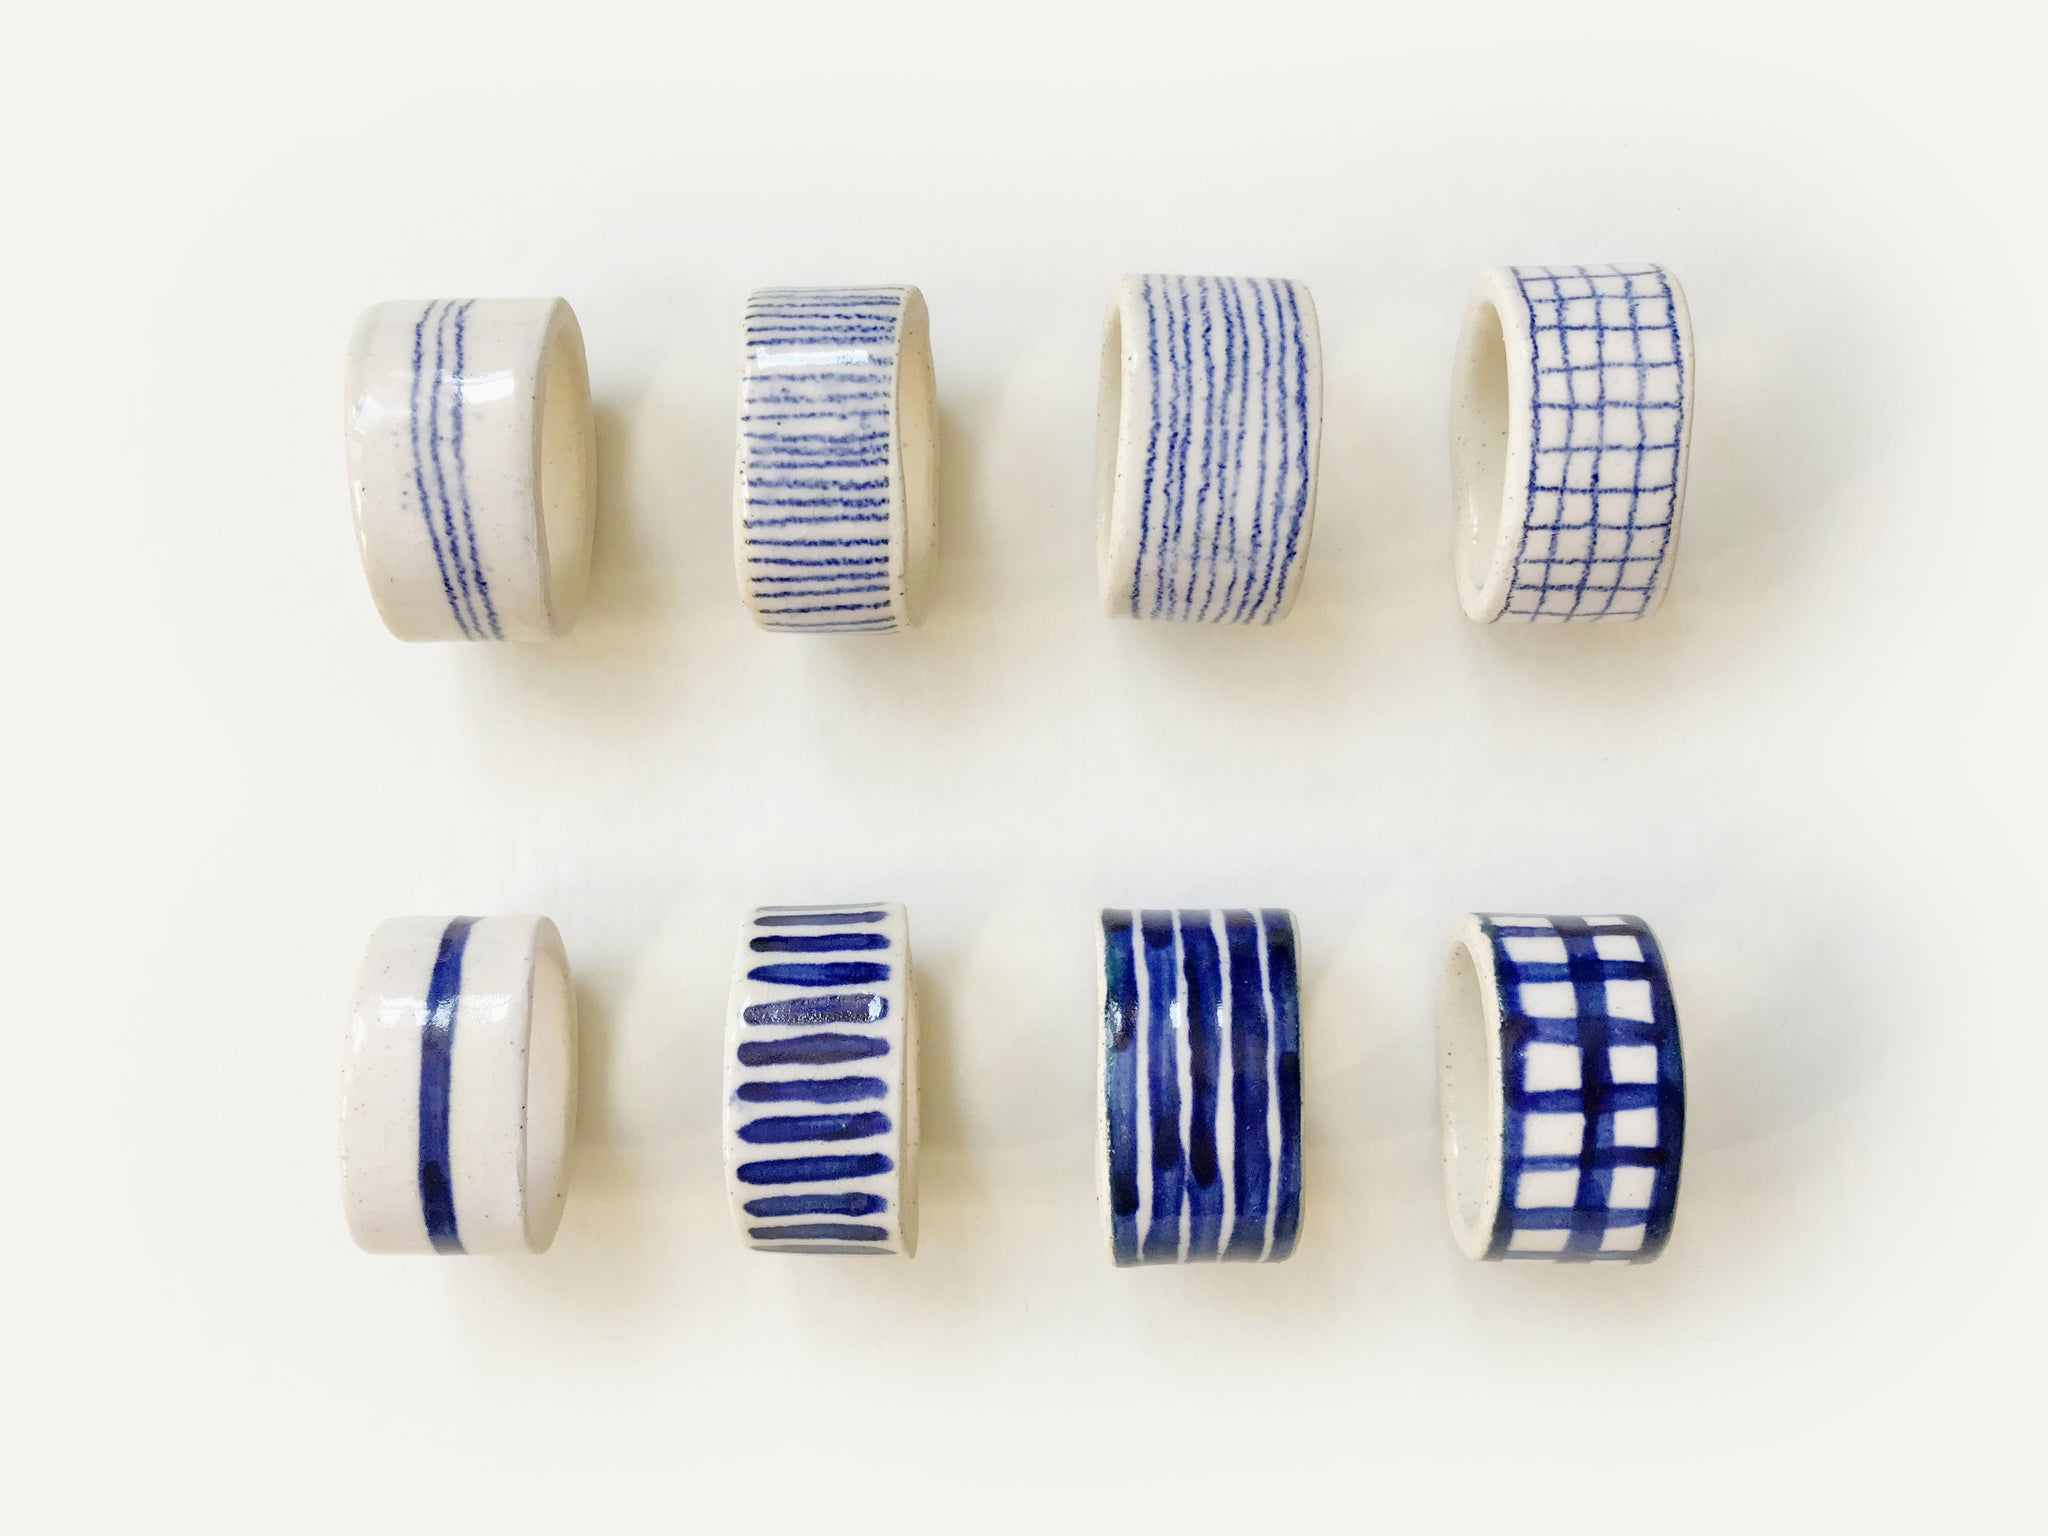 Set of 8 Ceramic Napkin Rings